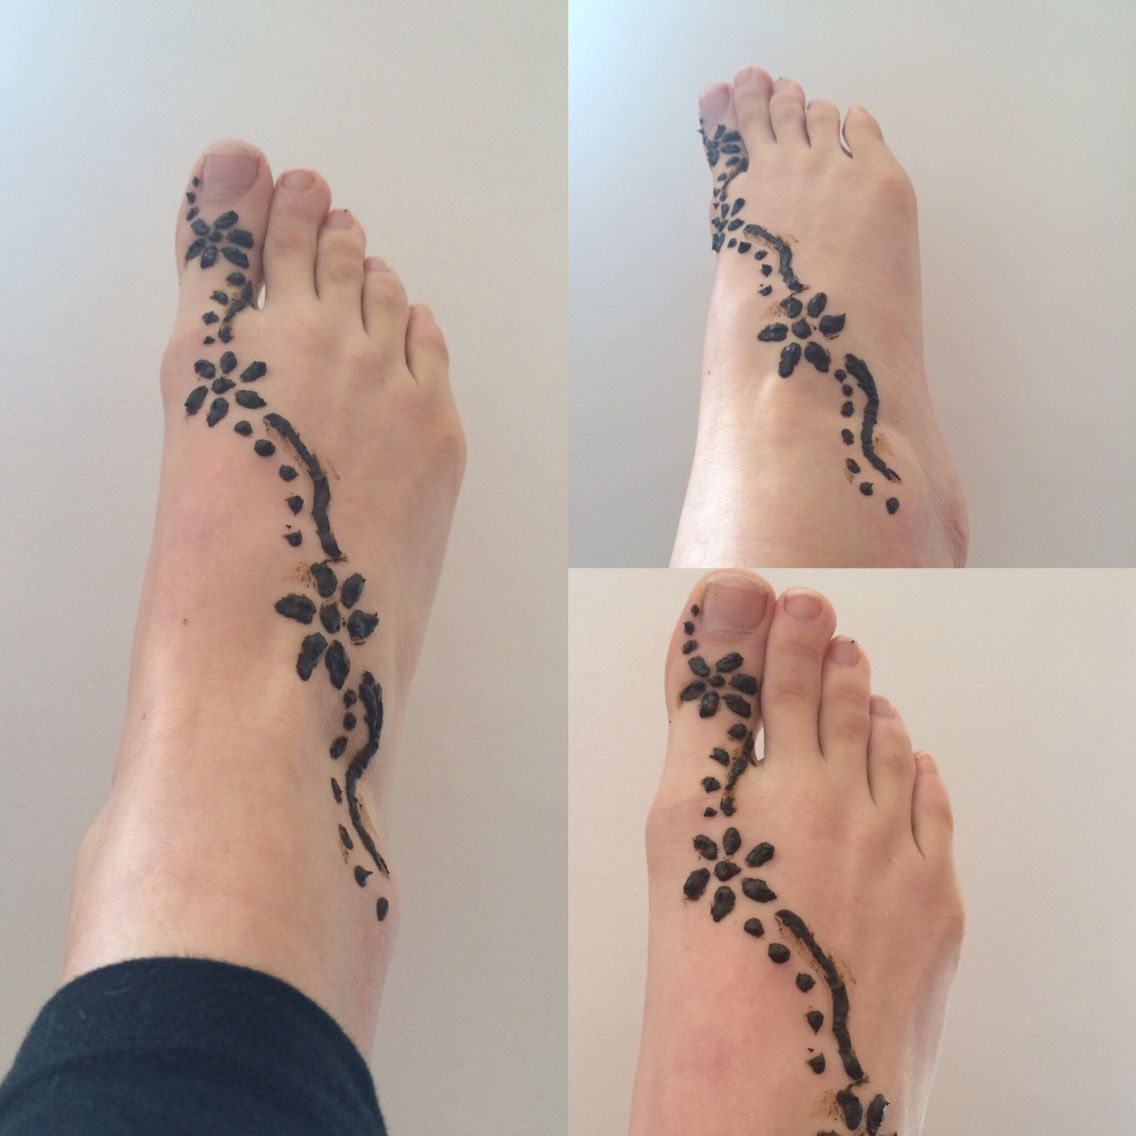 Henna Mehndi Tattoo Designs Idea For Wrist: EASY Henna Design For Beginners! Takes 10-15 Mins